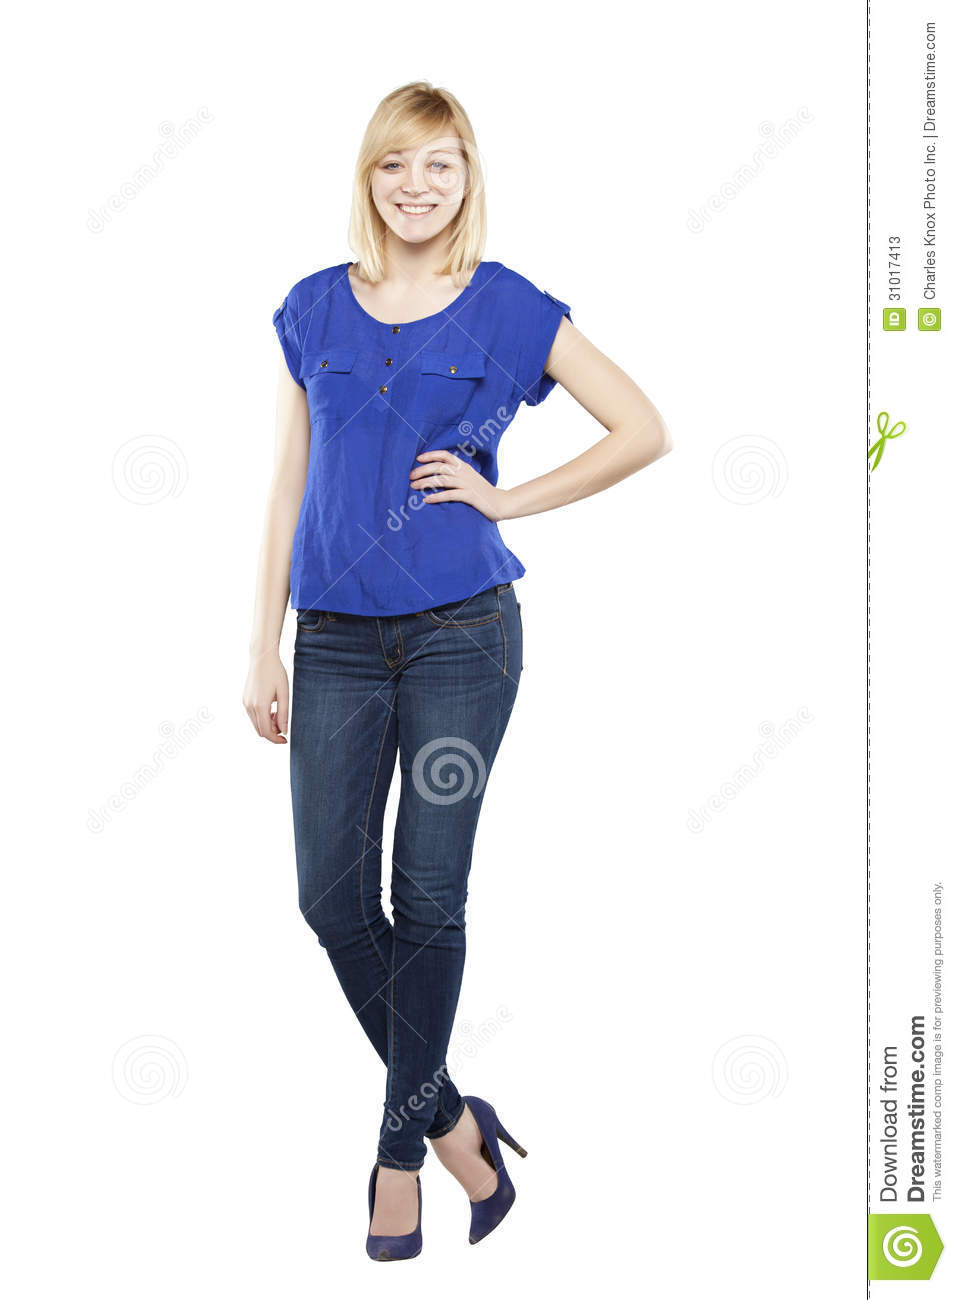 blonde woman feeling sassy in casual attire against white backgroundSassy White Woman